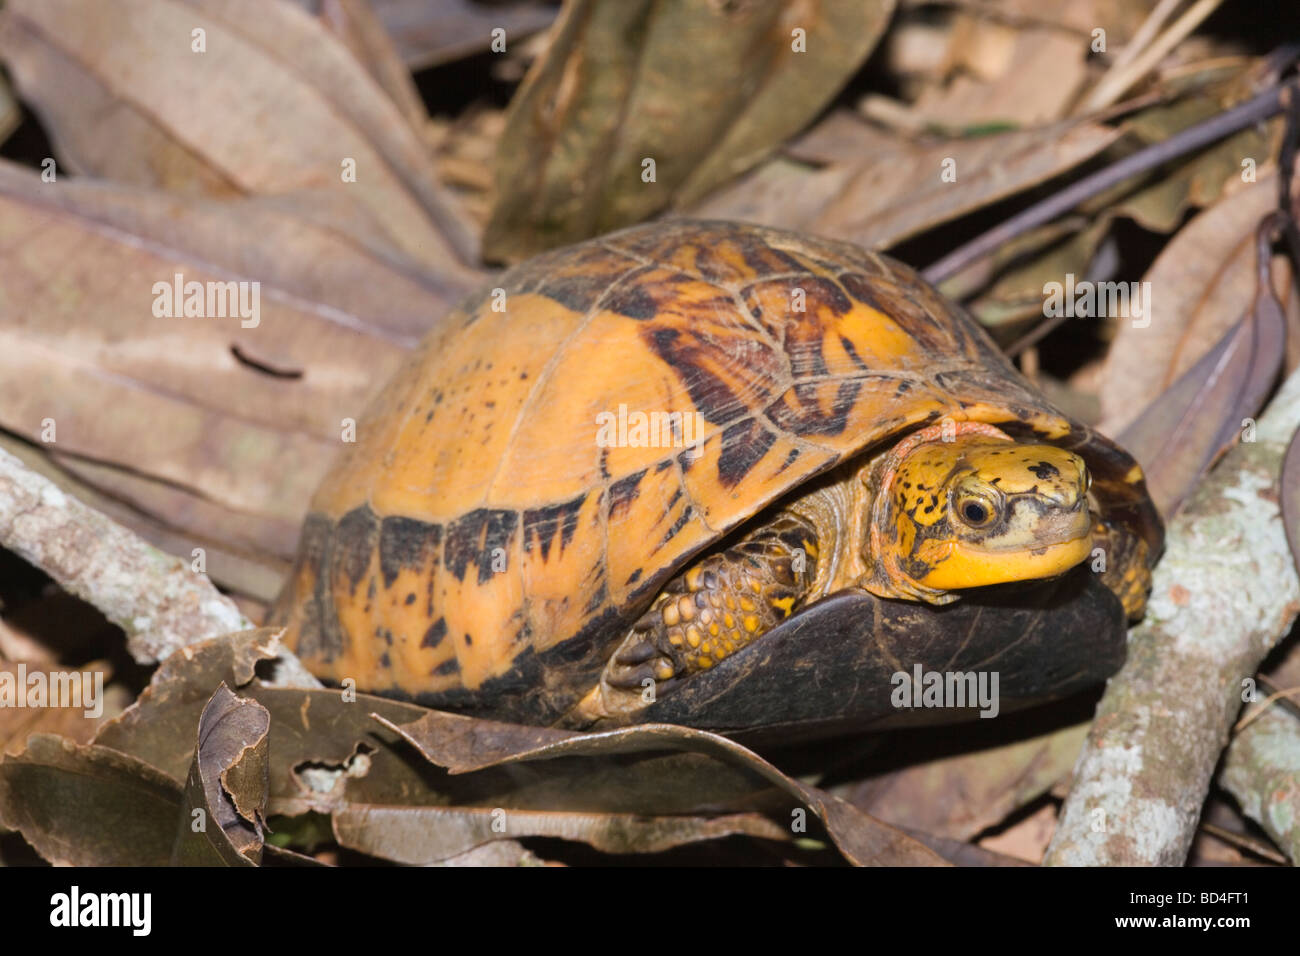 Indochinese Flowerback Box Turtle (Cuora galbinifrons). Head forelimbs emerging from between upper and lowered shell, Stock Photo